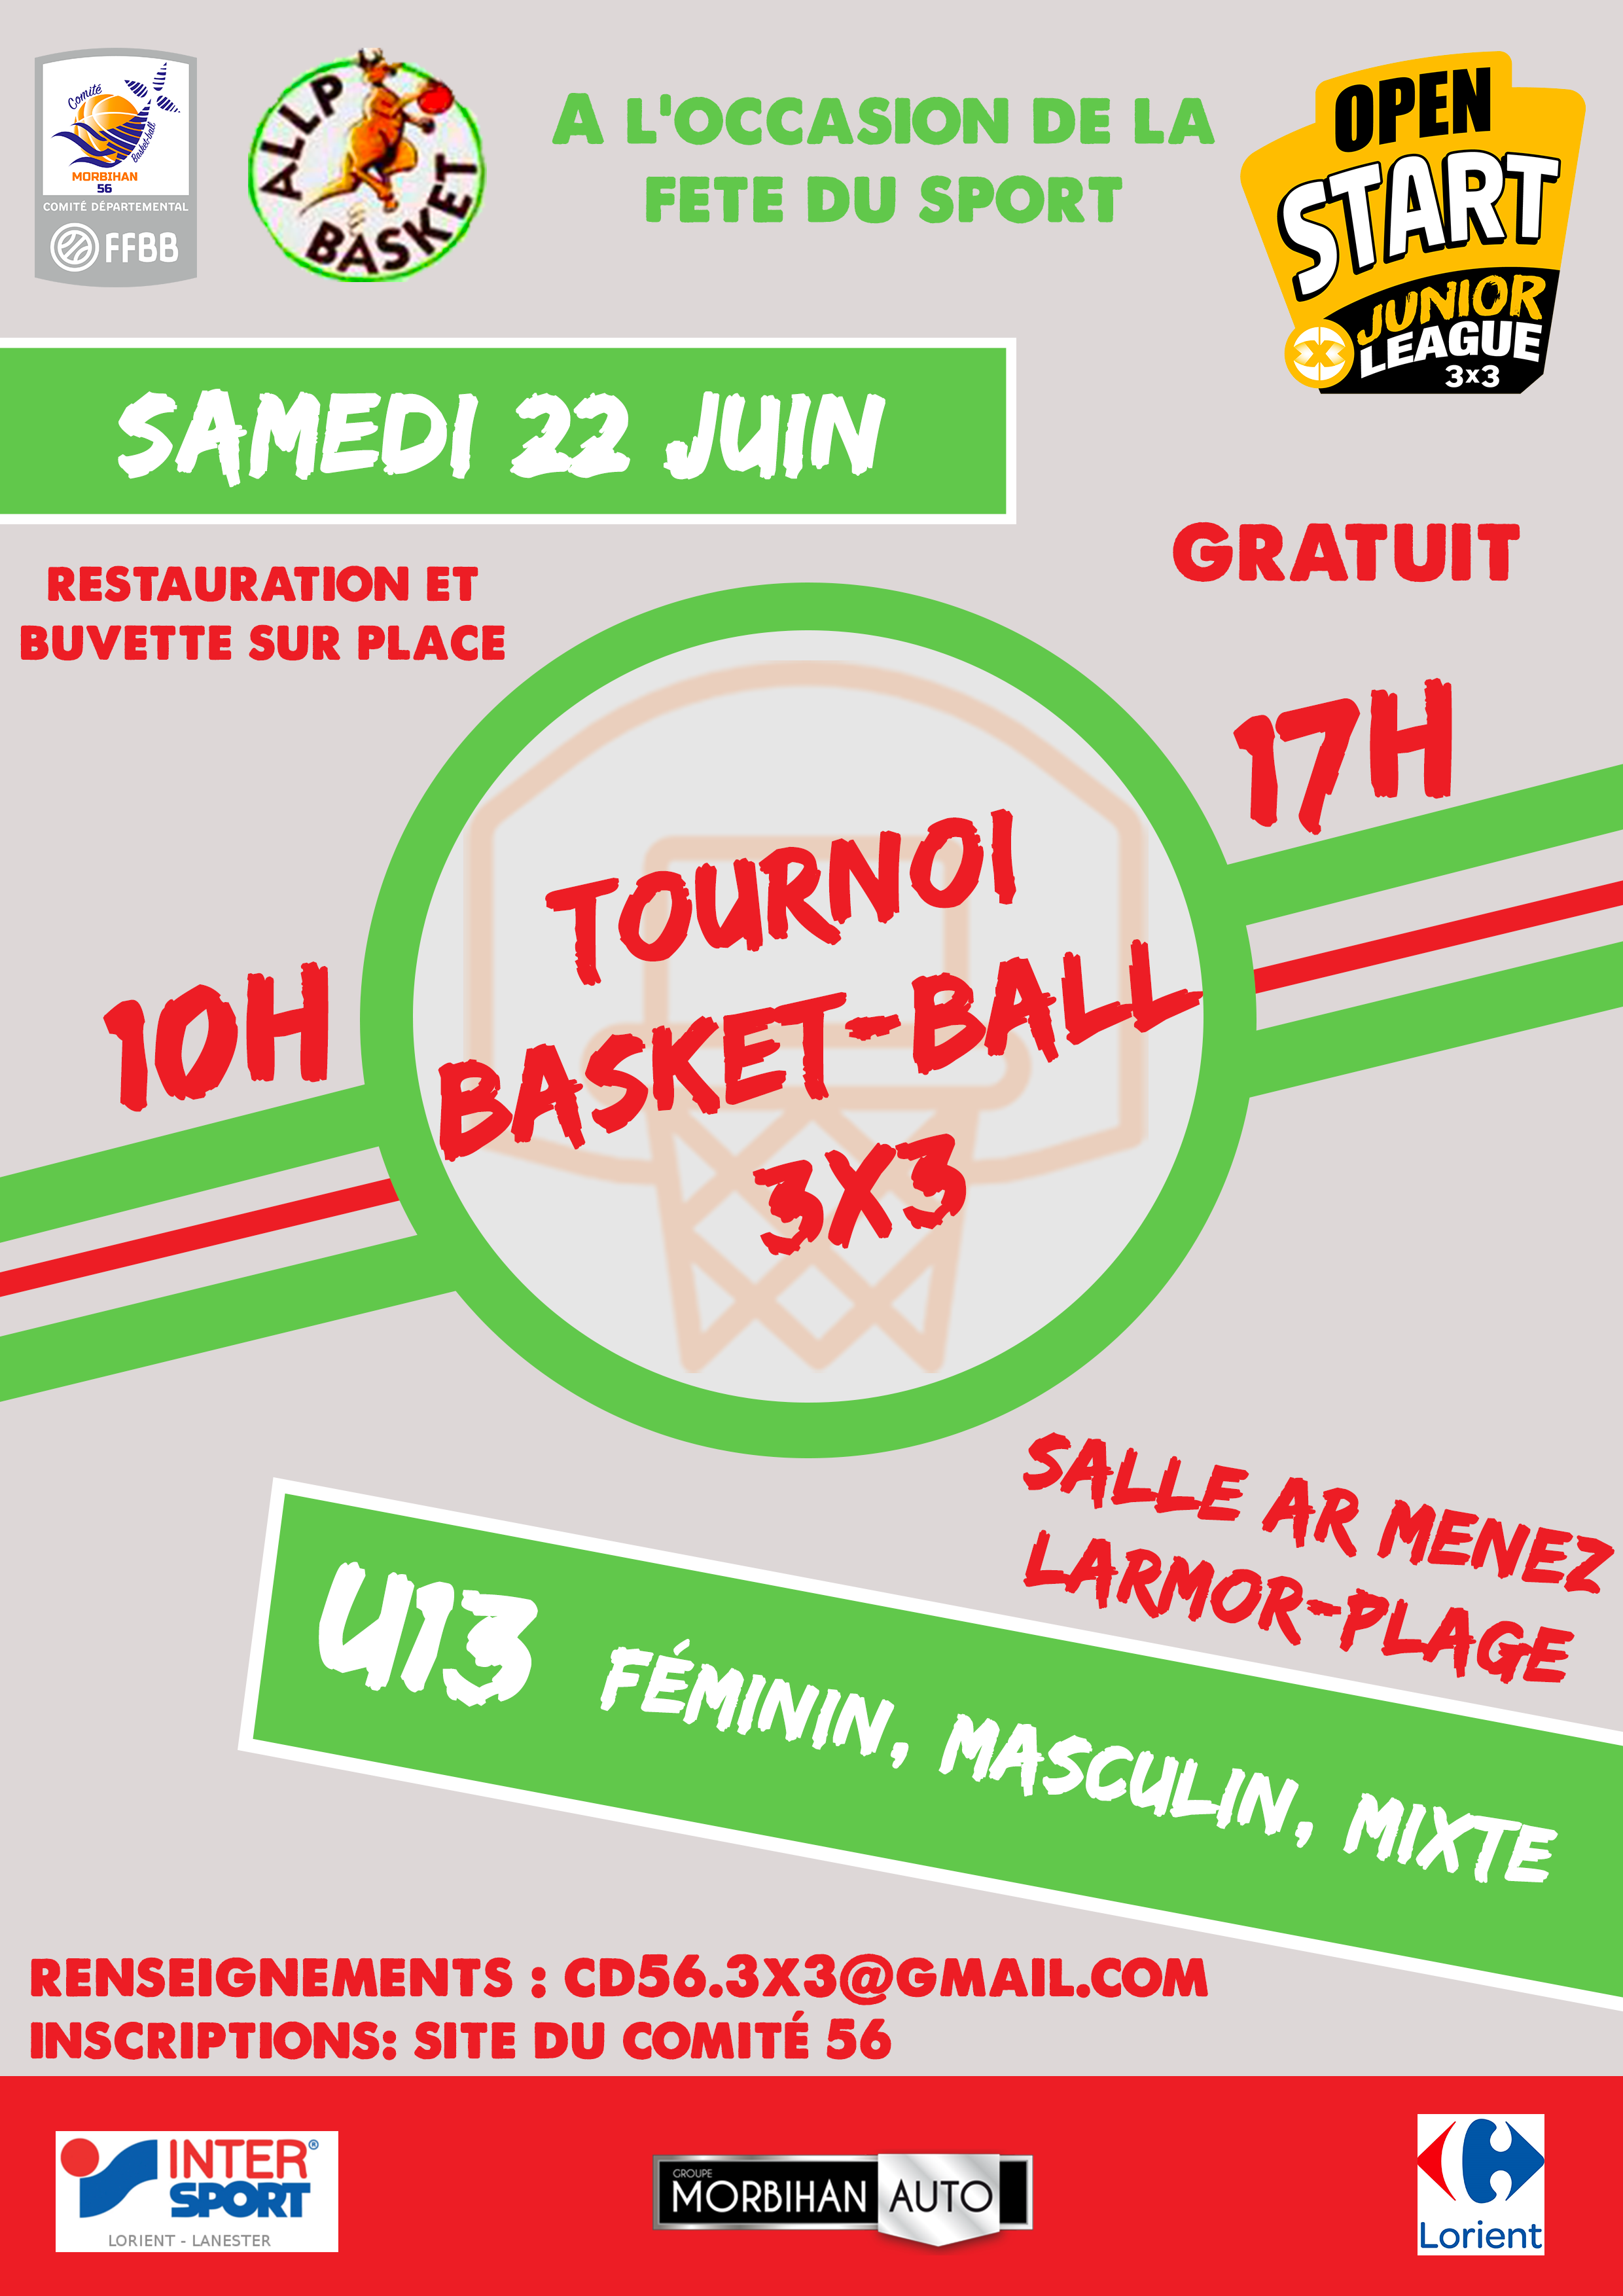 Open start 3x3 ALLP 22 juin copy